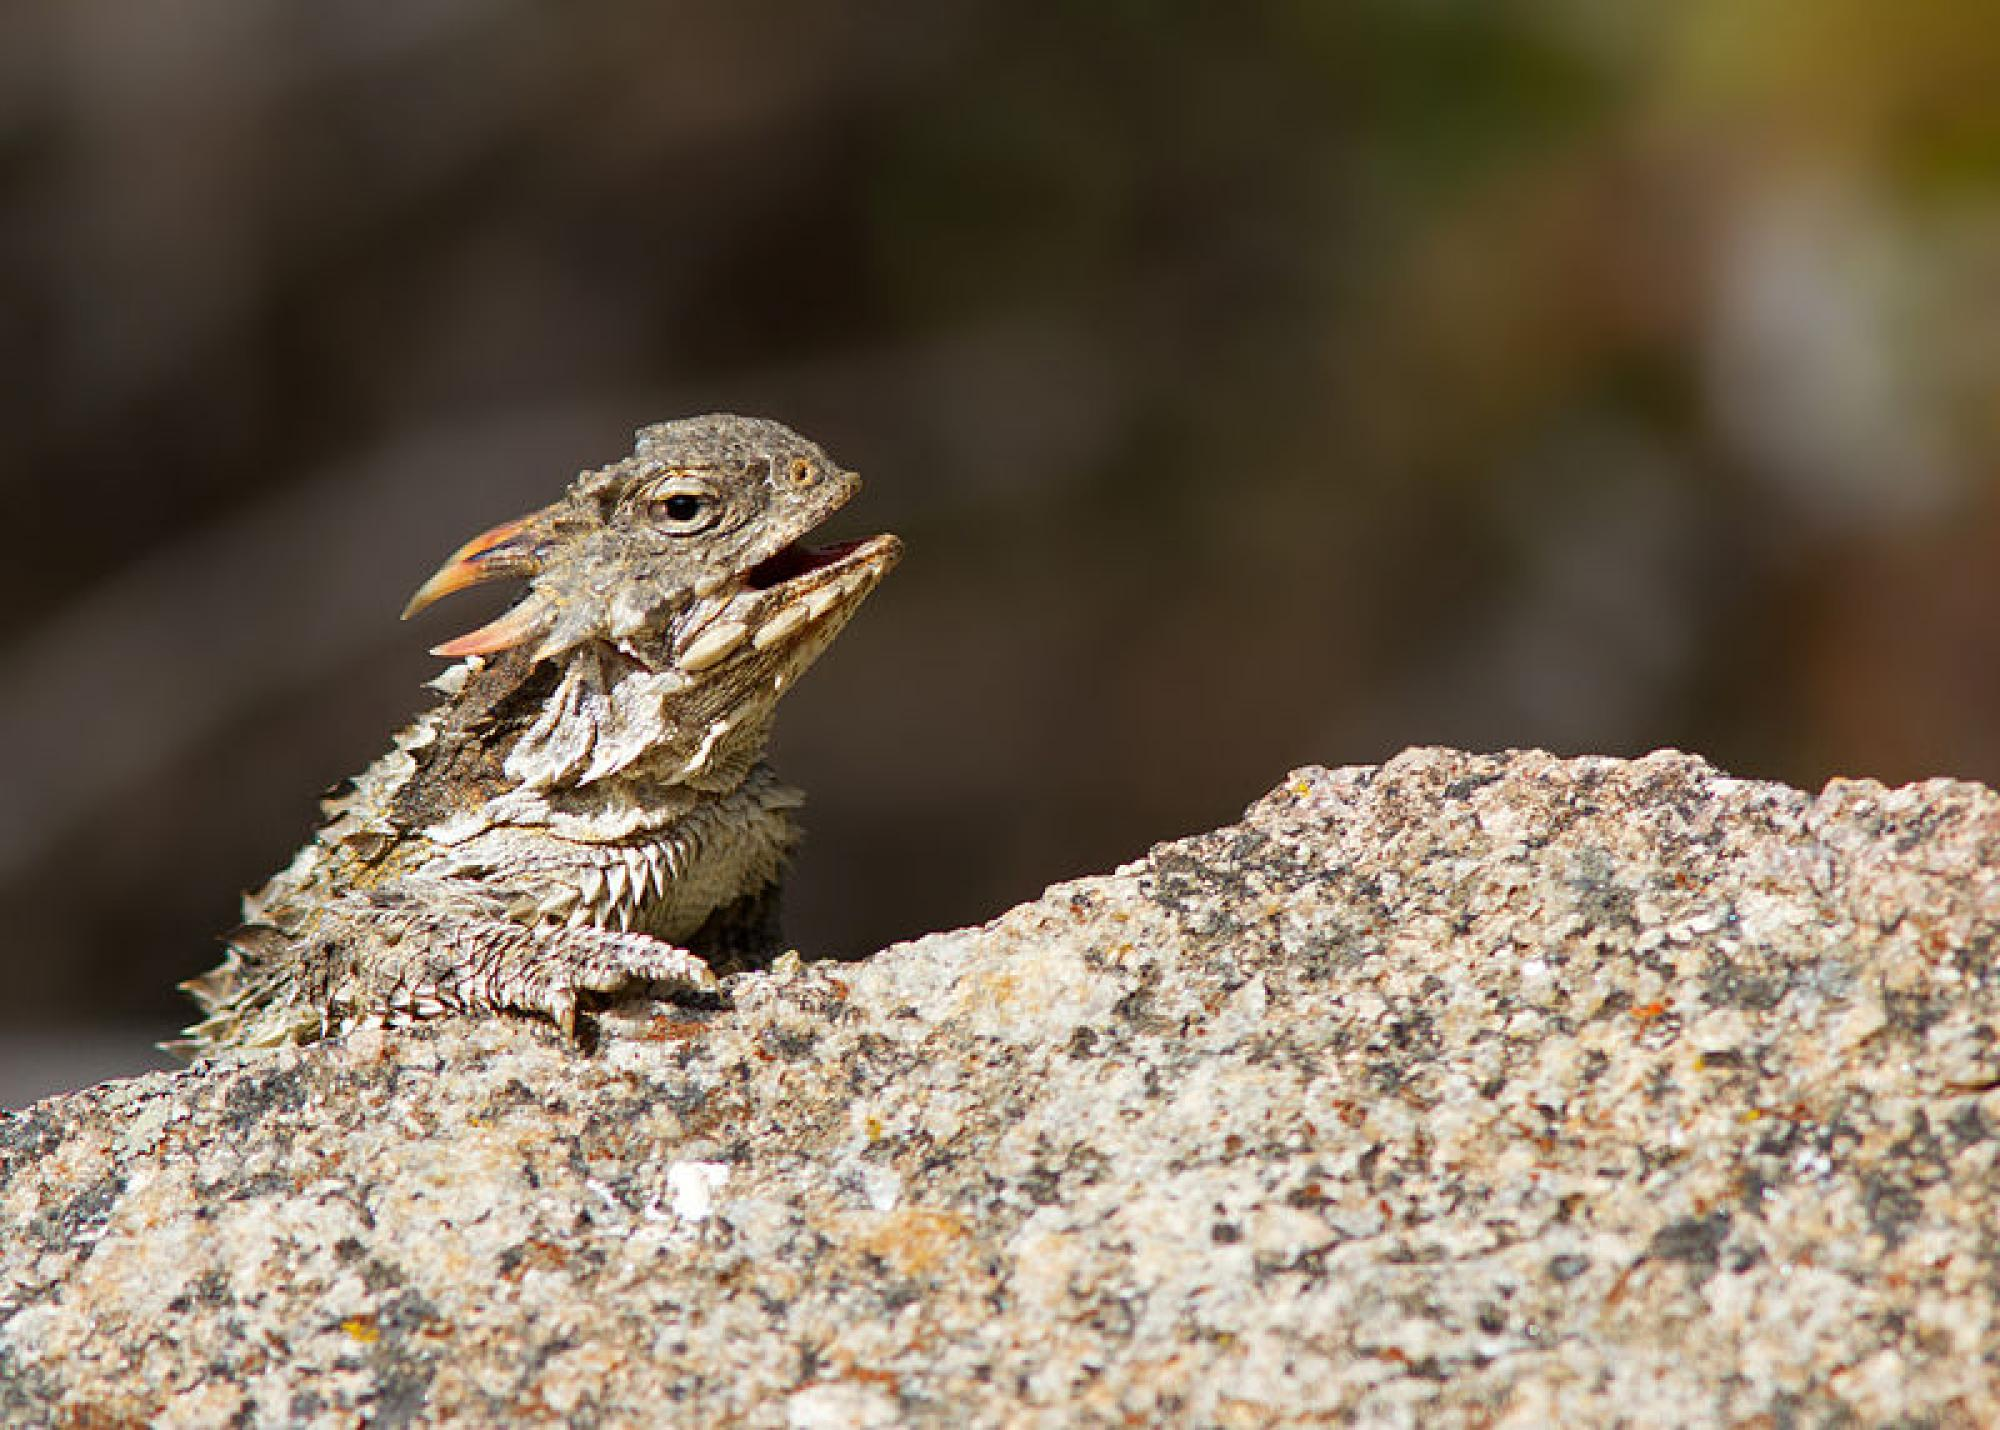 Horned lizards belong to a group of reptiles called iguanians.